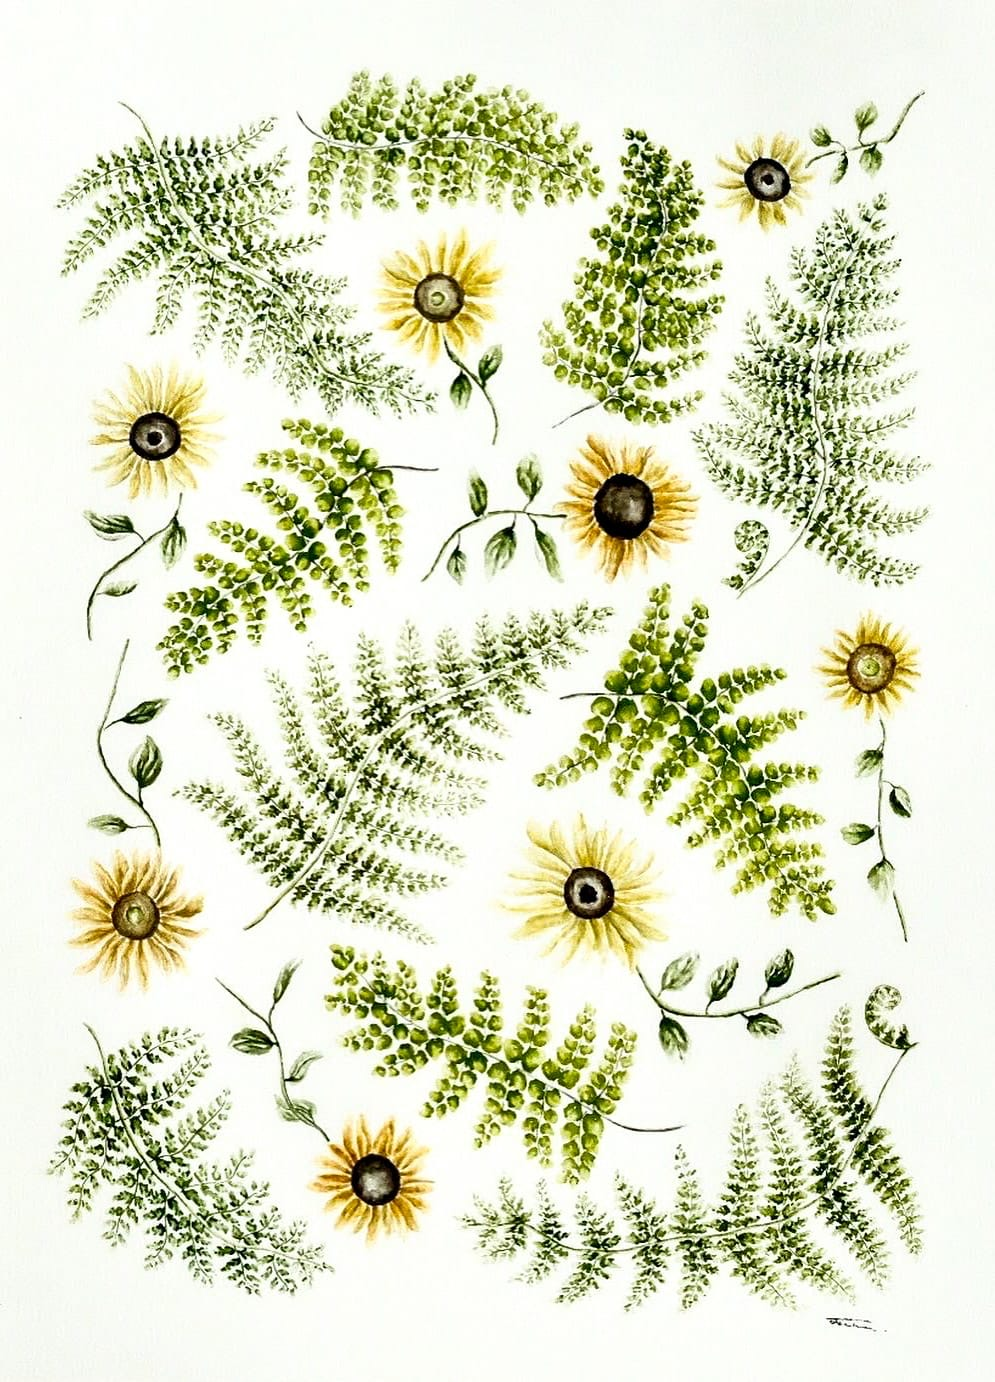 Fern and Sunflower